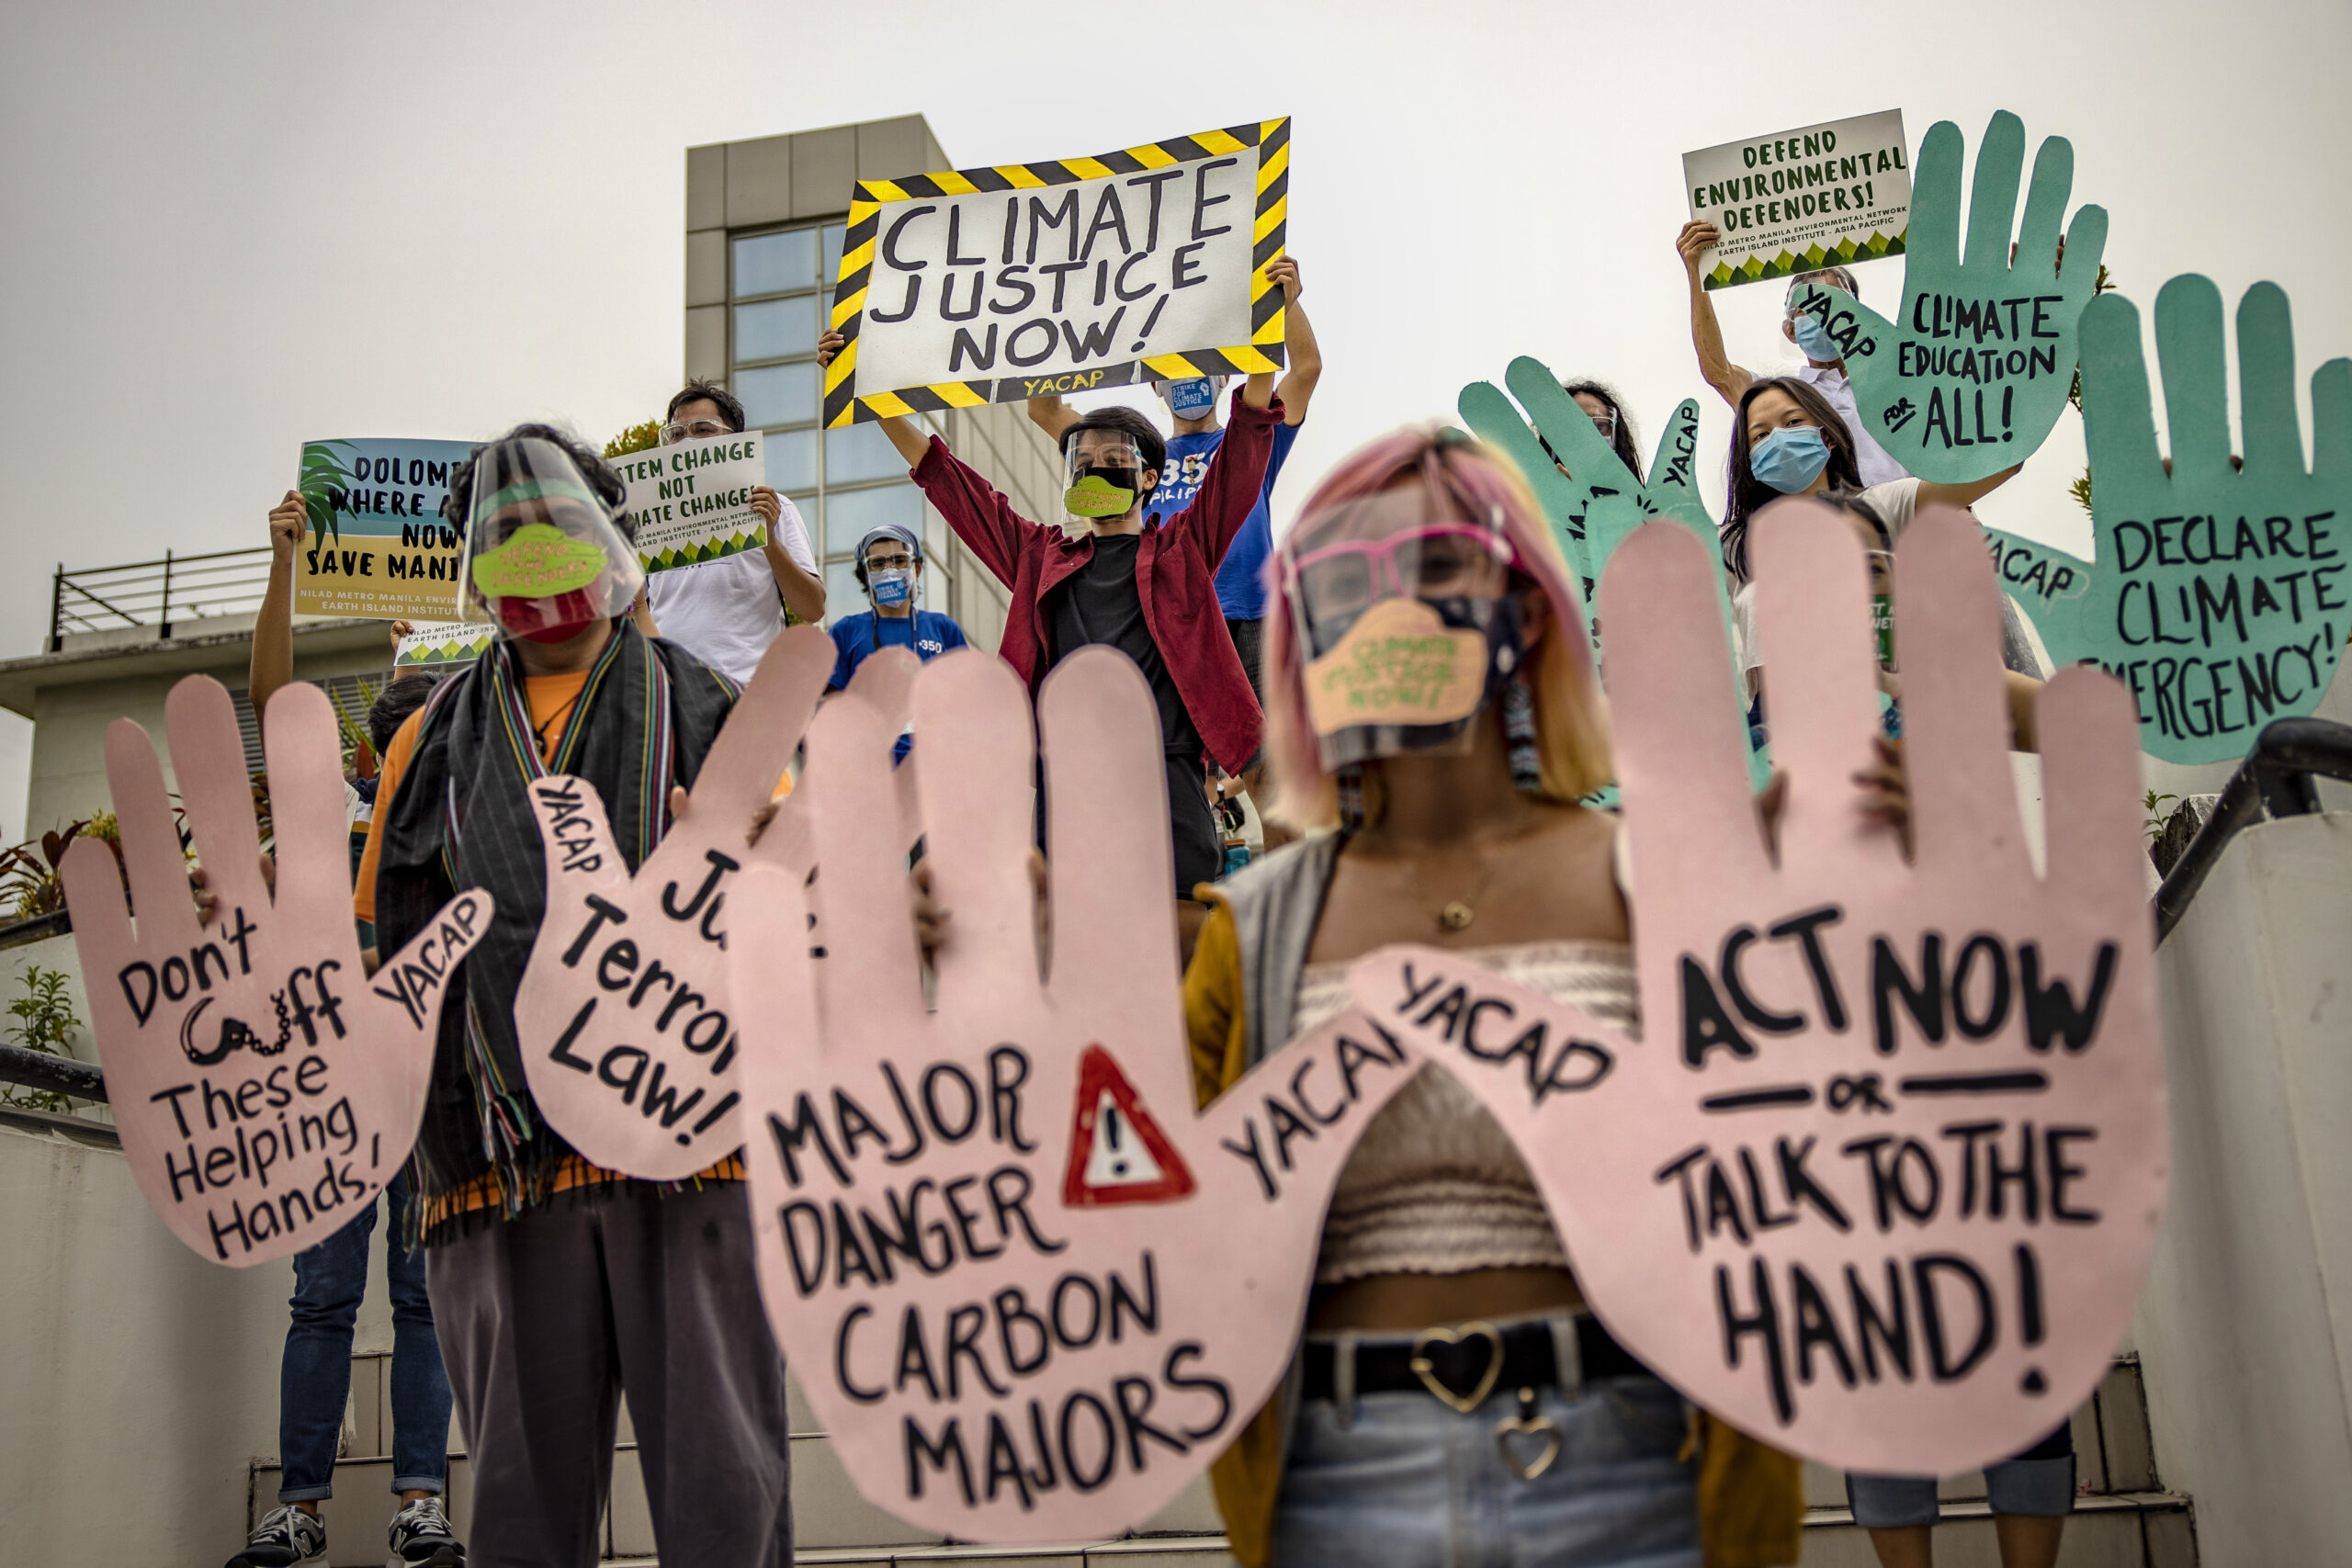 MANILA, PHILIPPINES - SEPTEMBER 25: Environmental activists, wearing facemasks and face shields to protect against COVID-19, take part in a rally coinciding with global protests on the climate crisis on September 25, 2020 in Manila, Philippines. The Global Climate Strike, also known as the Fridays for Future movement, is observed to demand urgent action from governments around the world to address the climate crisis. (Photo by Ezra Acayan/Getty Images)